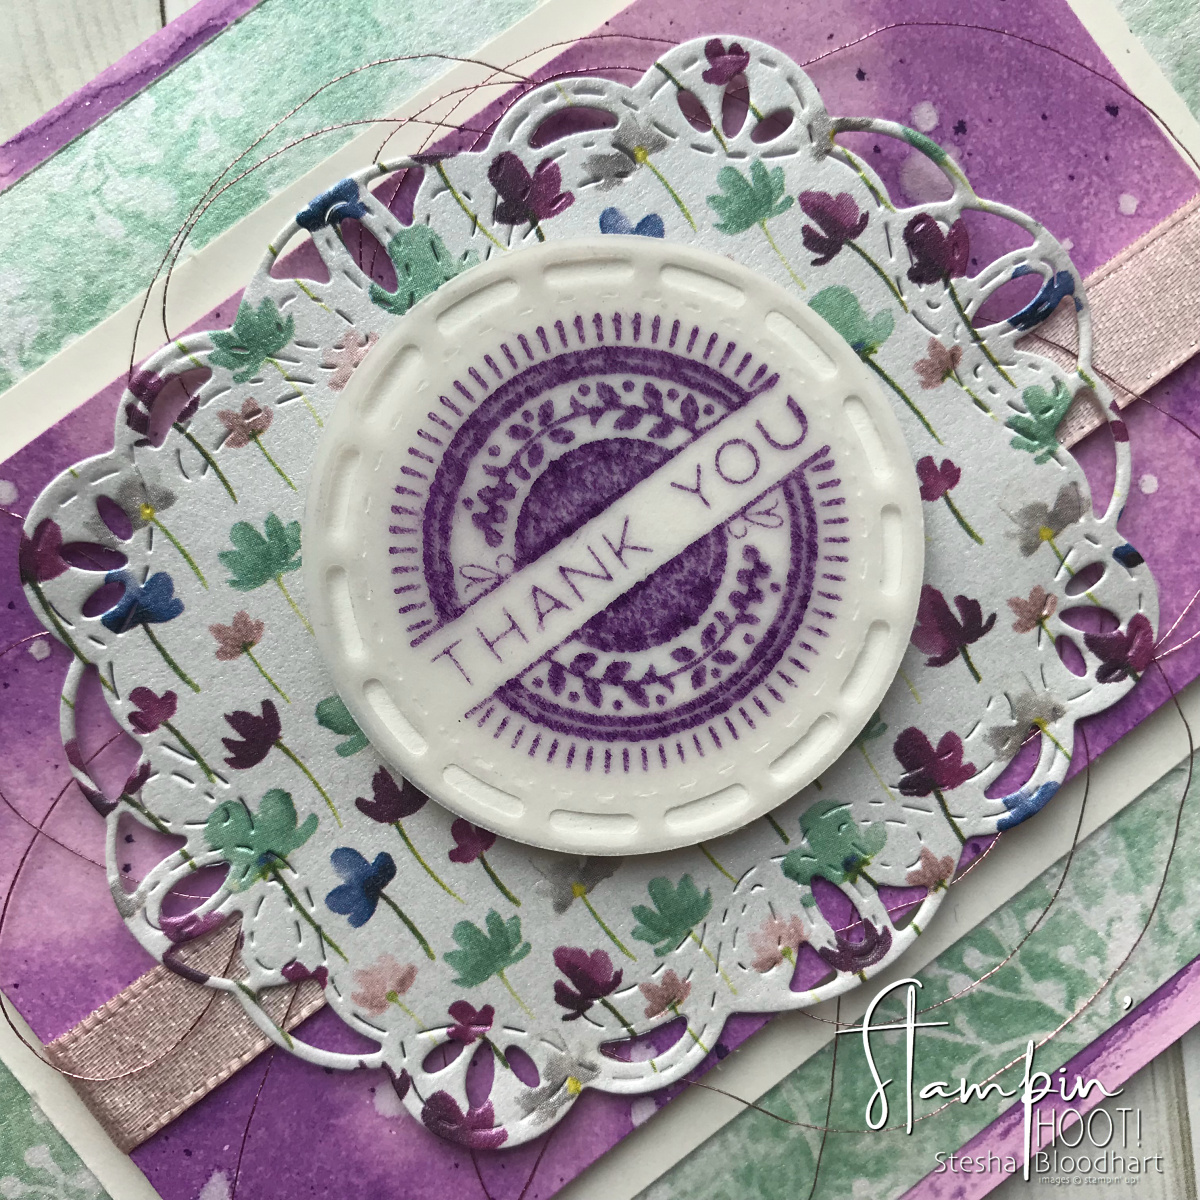 Stitched All Around Bundle by Stampin' Up! Handmade Thank You Card created by Stesha Bloodhart, Stampin' Hoot! for #gdp152 #steshabloodhart #stampinhoot